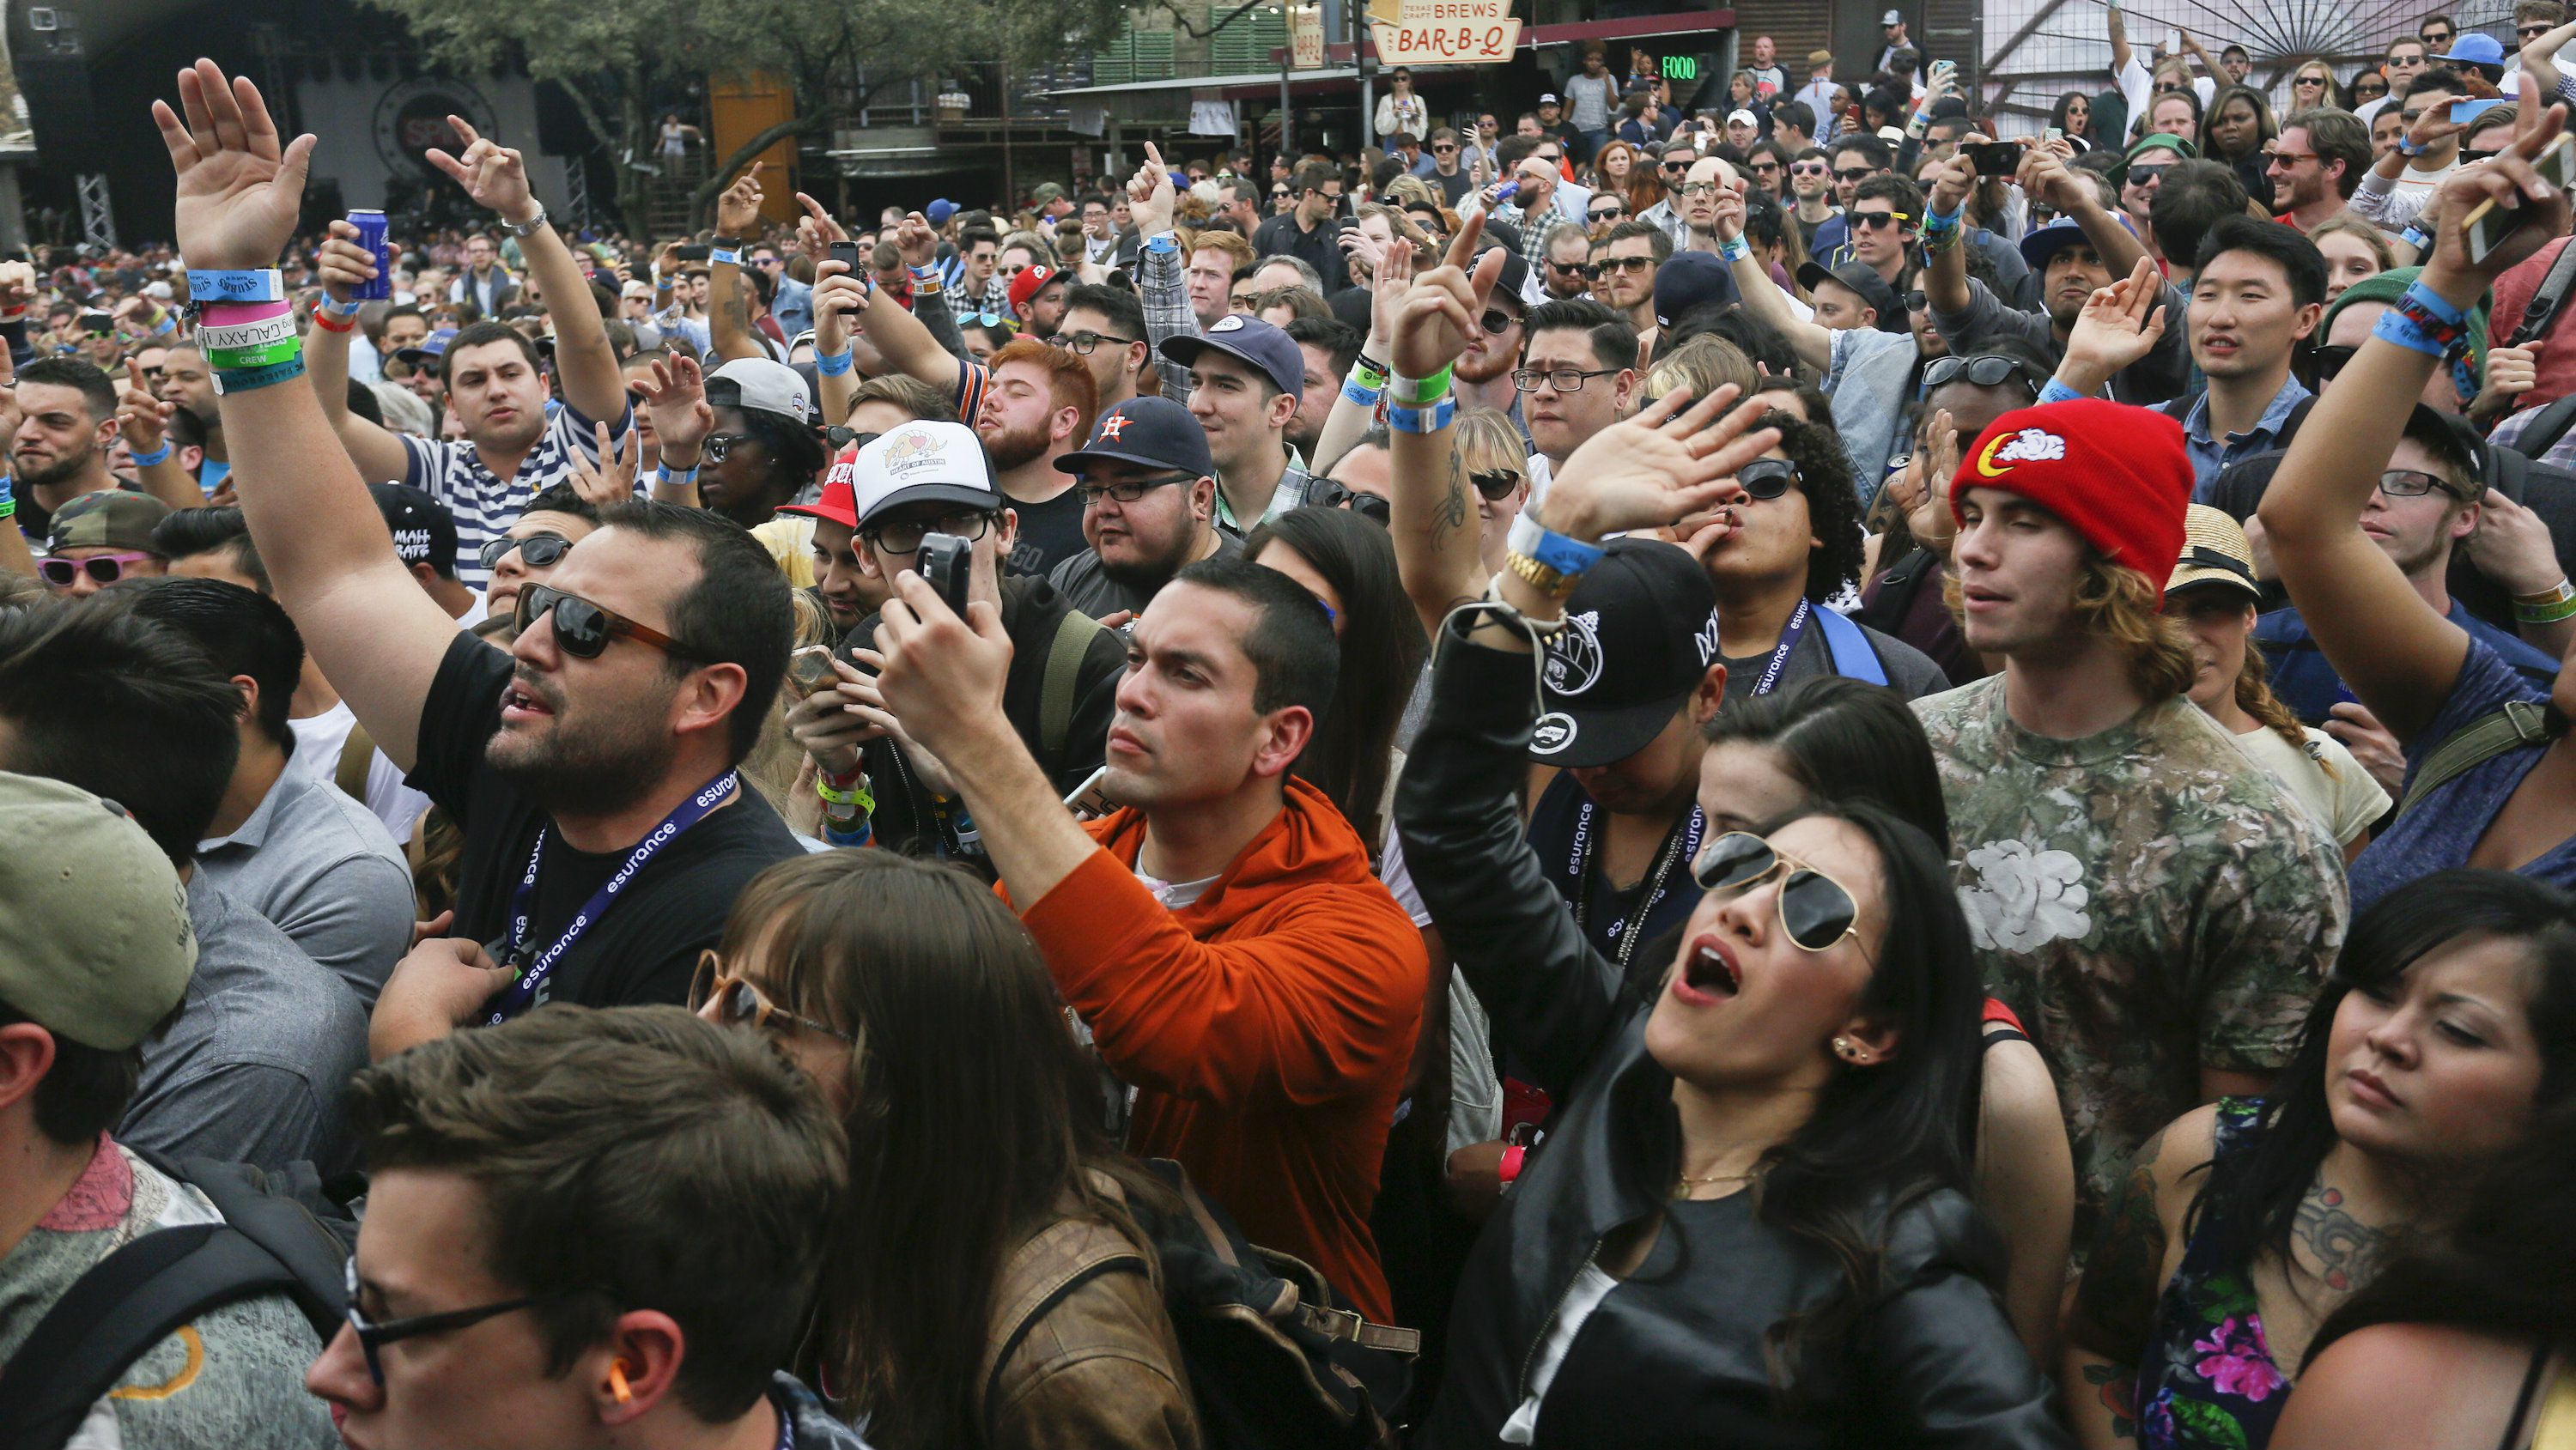 Crowds at SXSW